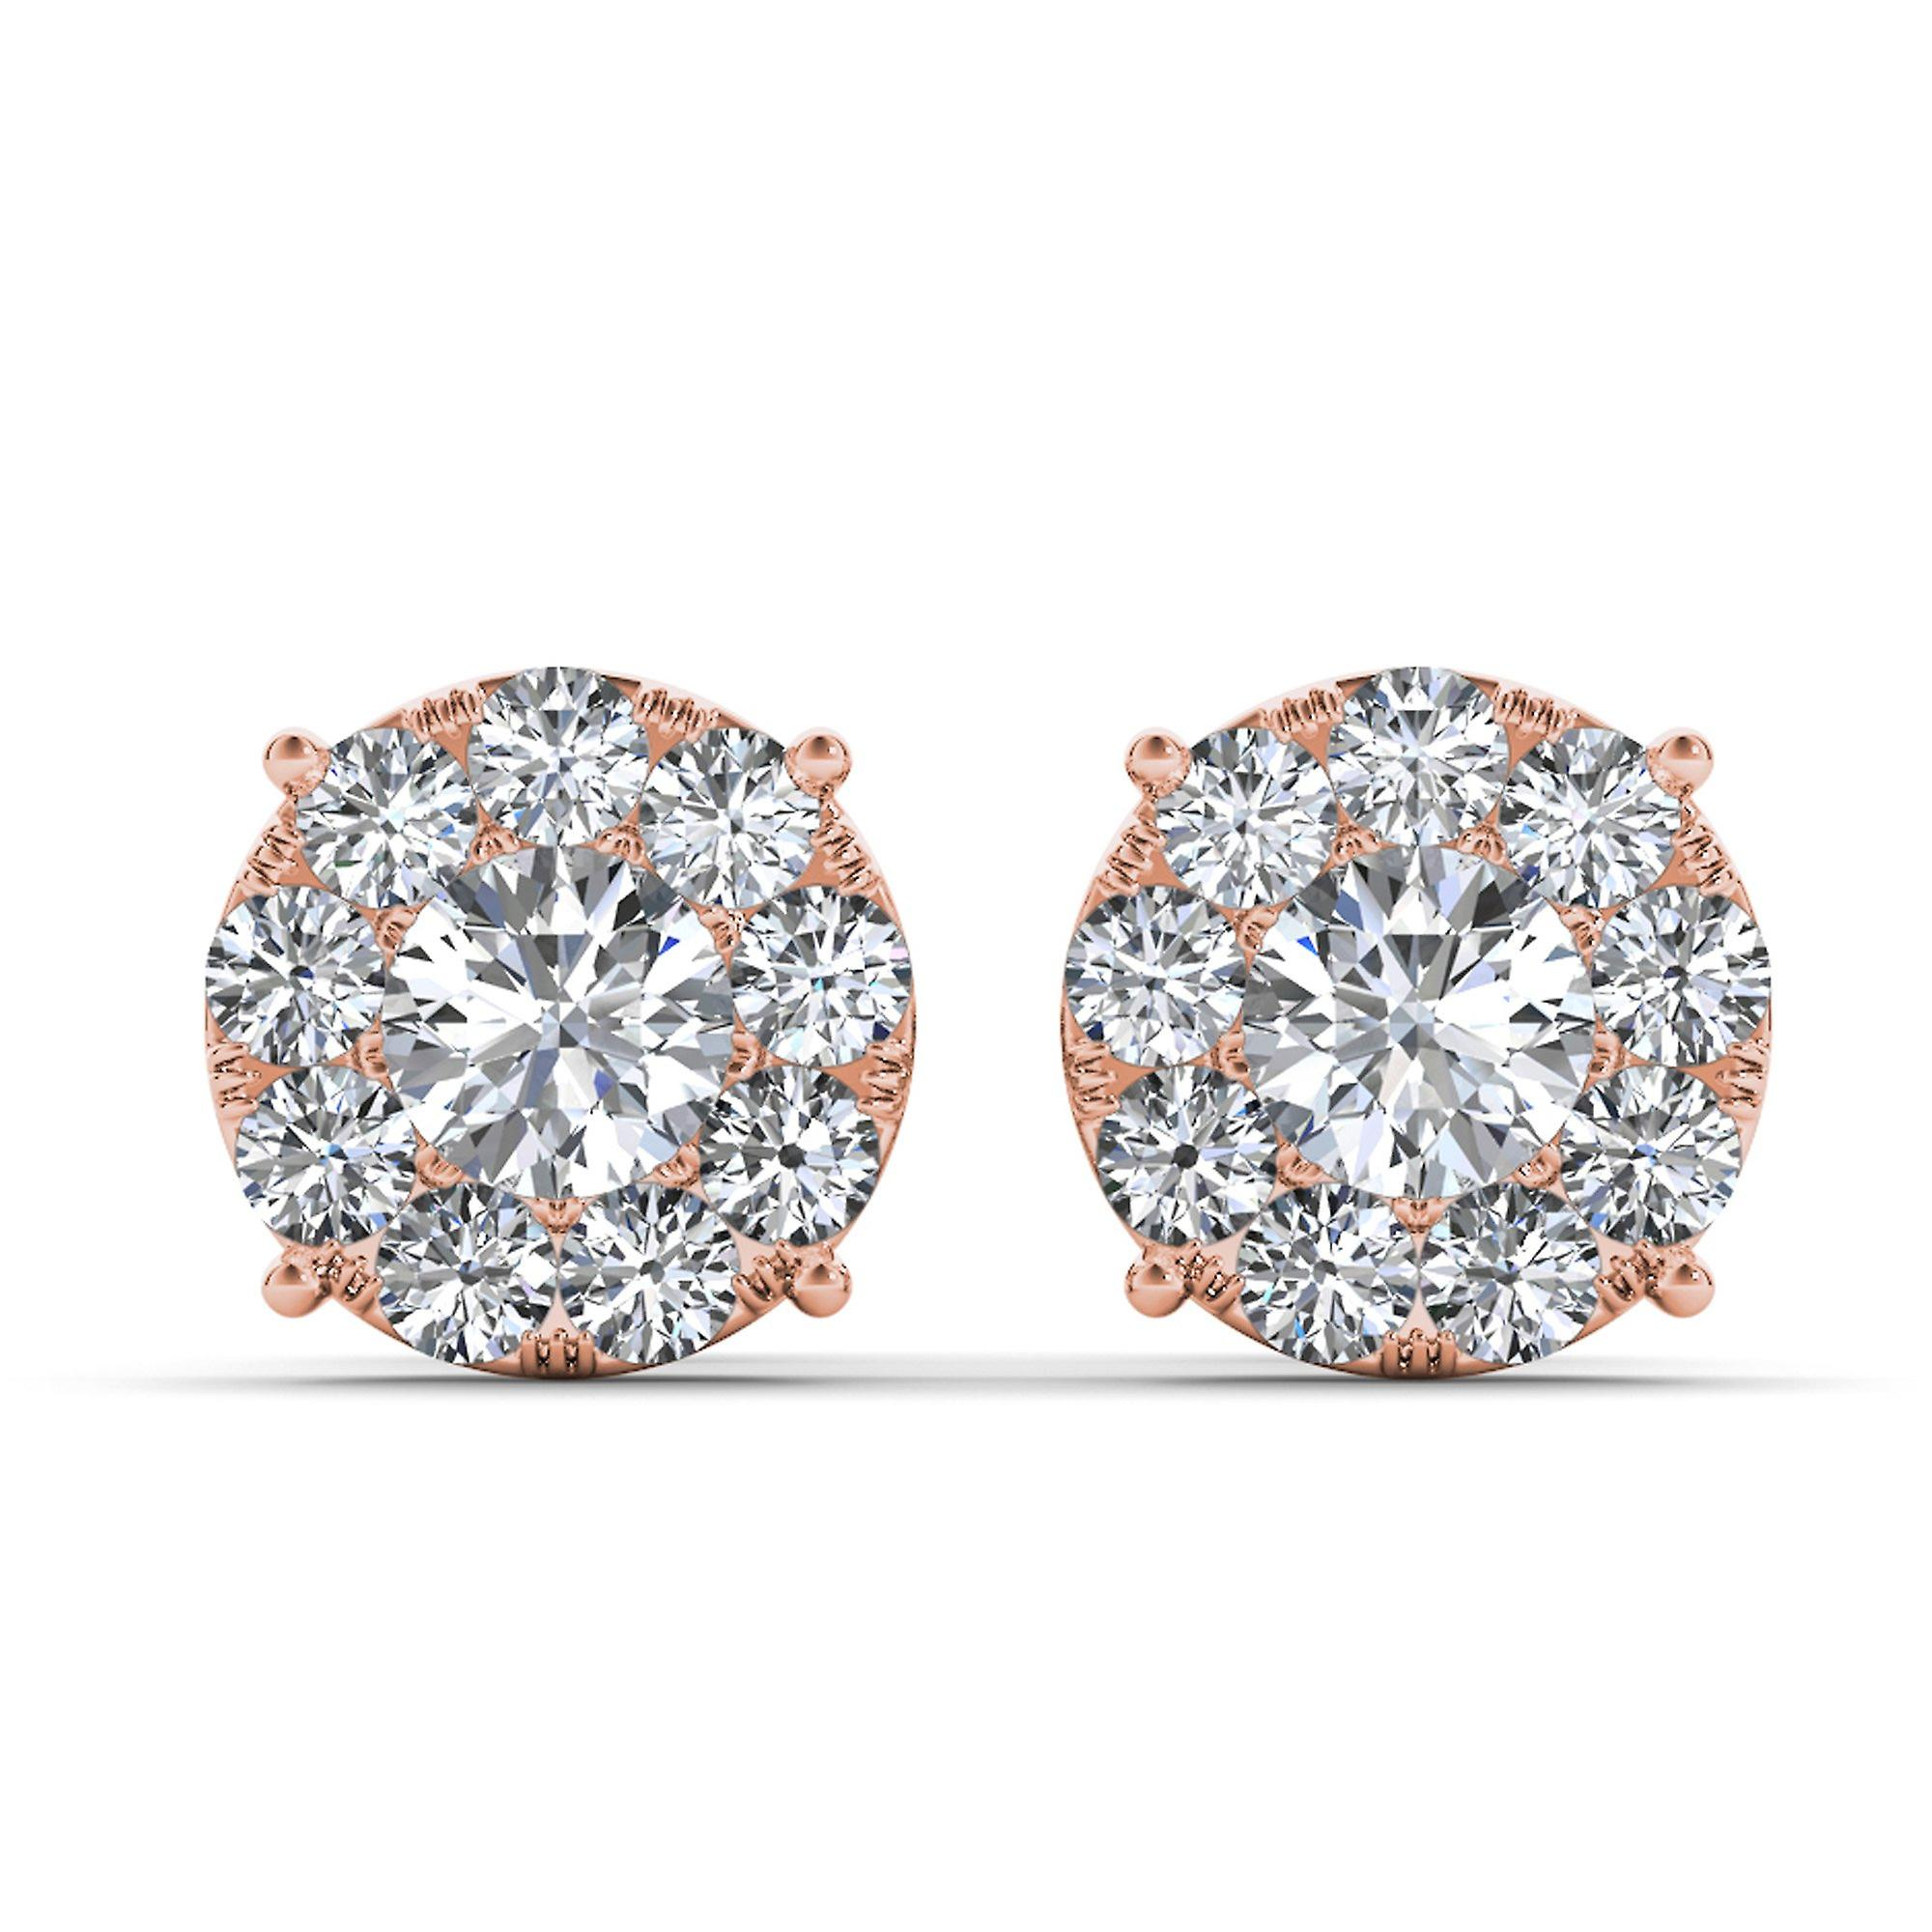 IGI Certified Solid 10k Rose or 1.25 Ct Diamond Stud boucles d'oreilles Pushback